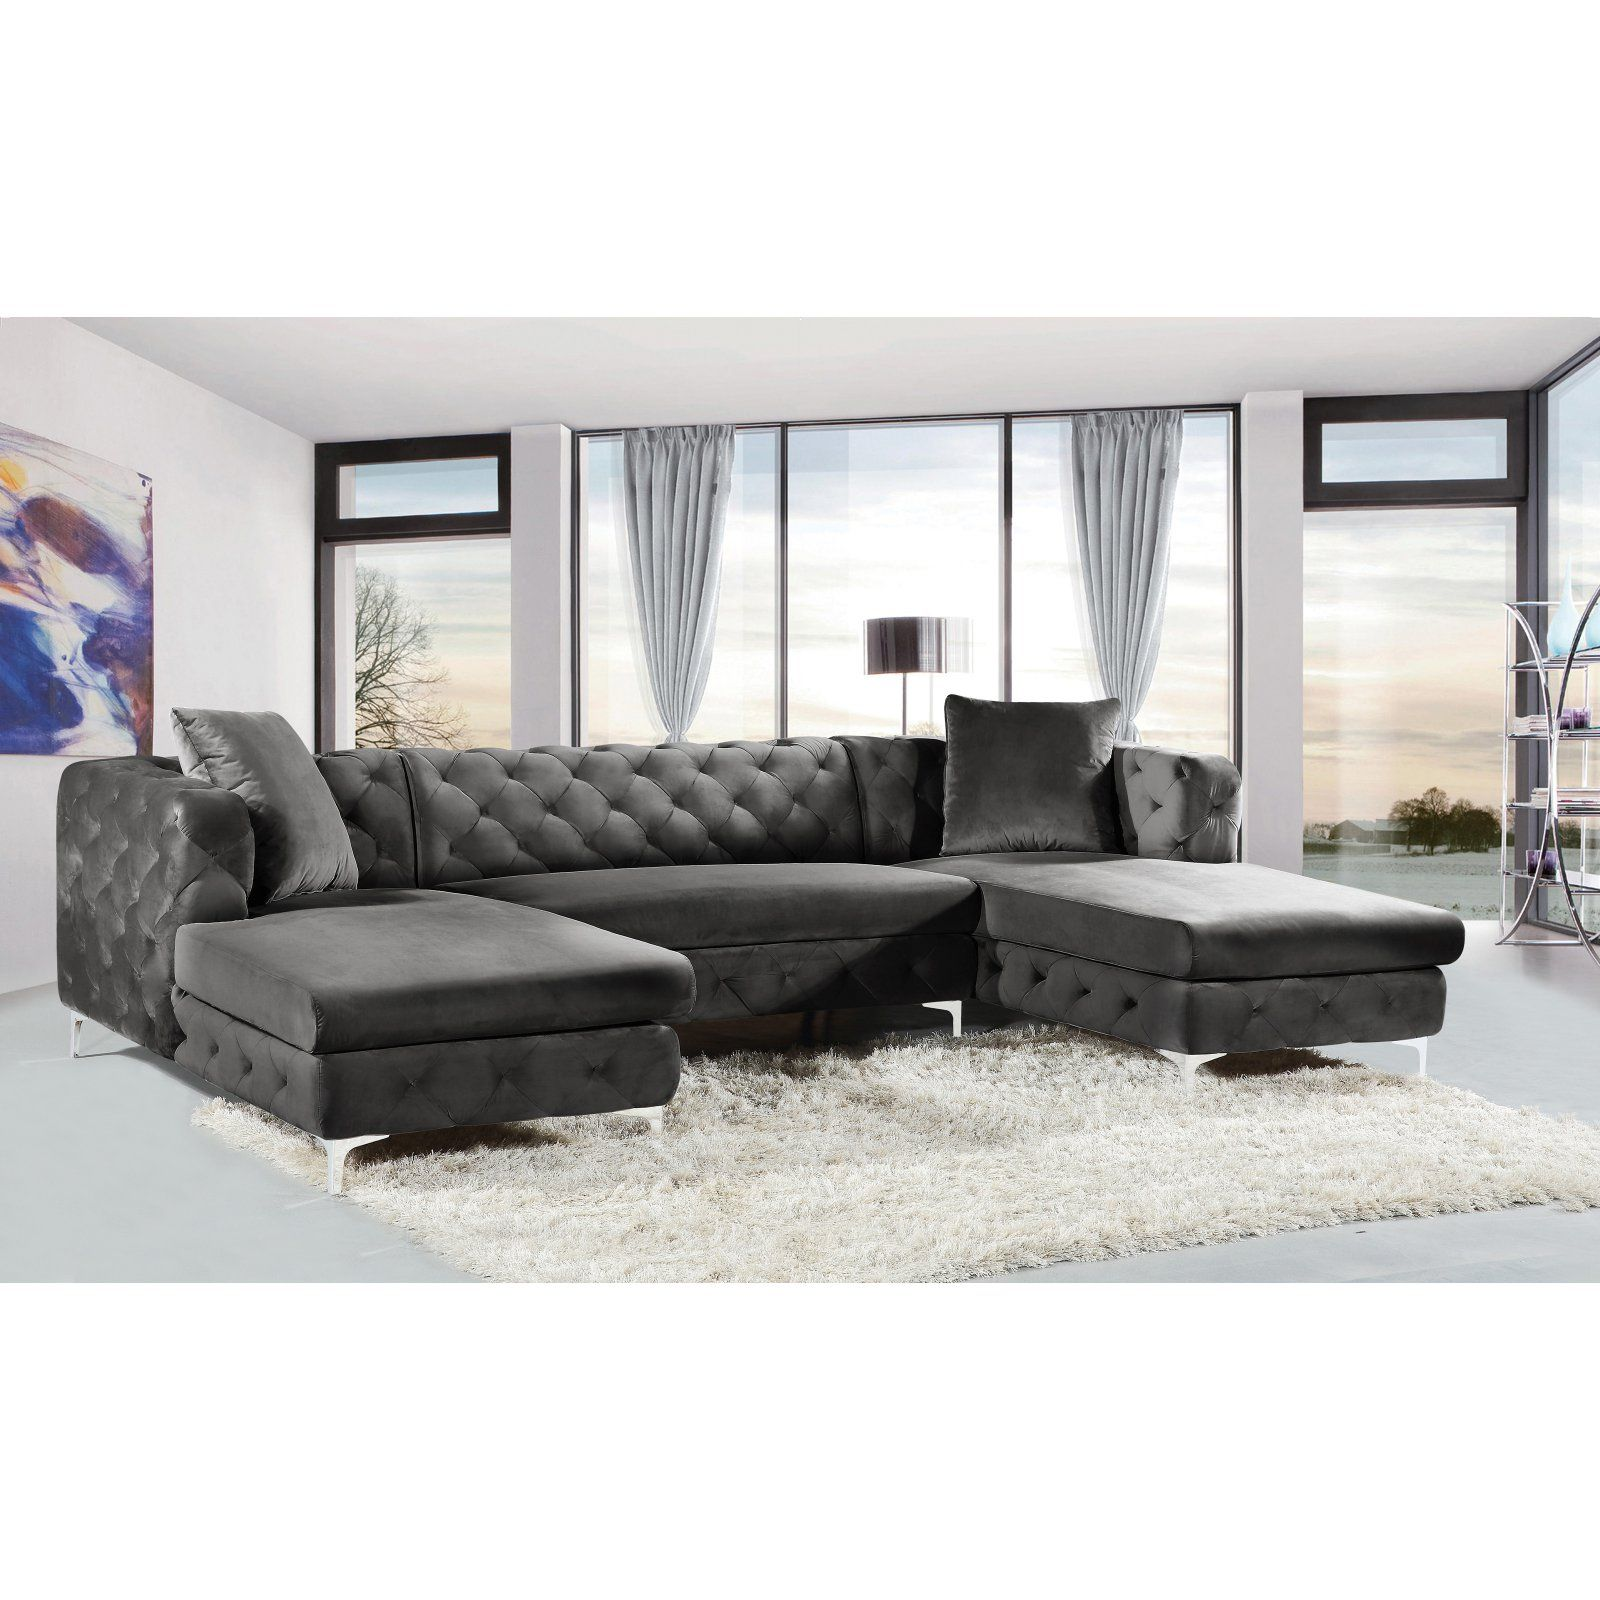 Meridian Furniture Inc 3 Piece Gail Velvet Sectional Black In 2019